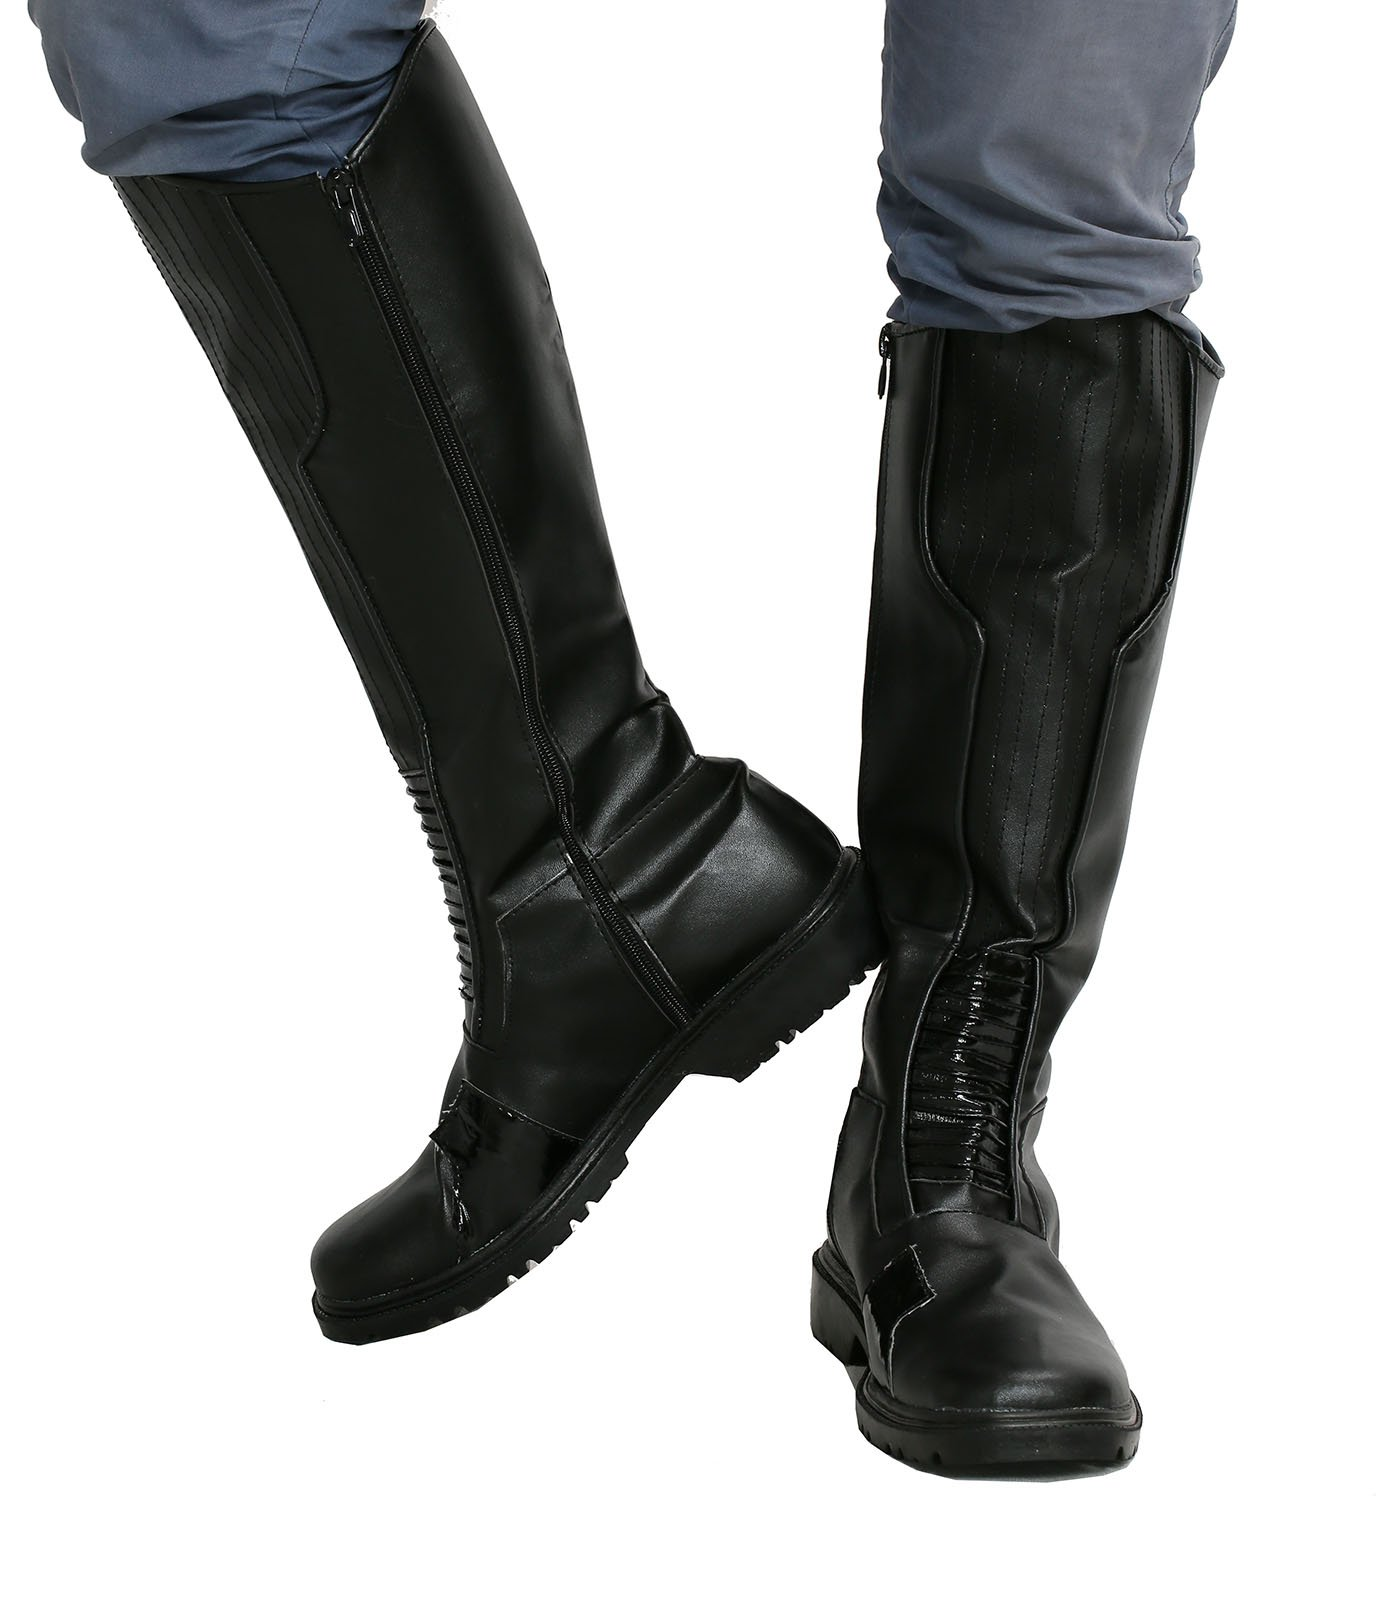 Zoom Cosplay Boots Shoes Halloween Costume Accessories Props Black PU Male US8 by Hotwinds